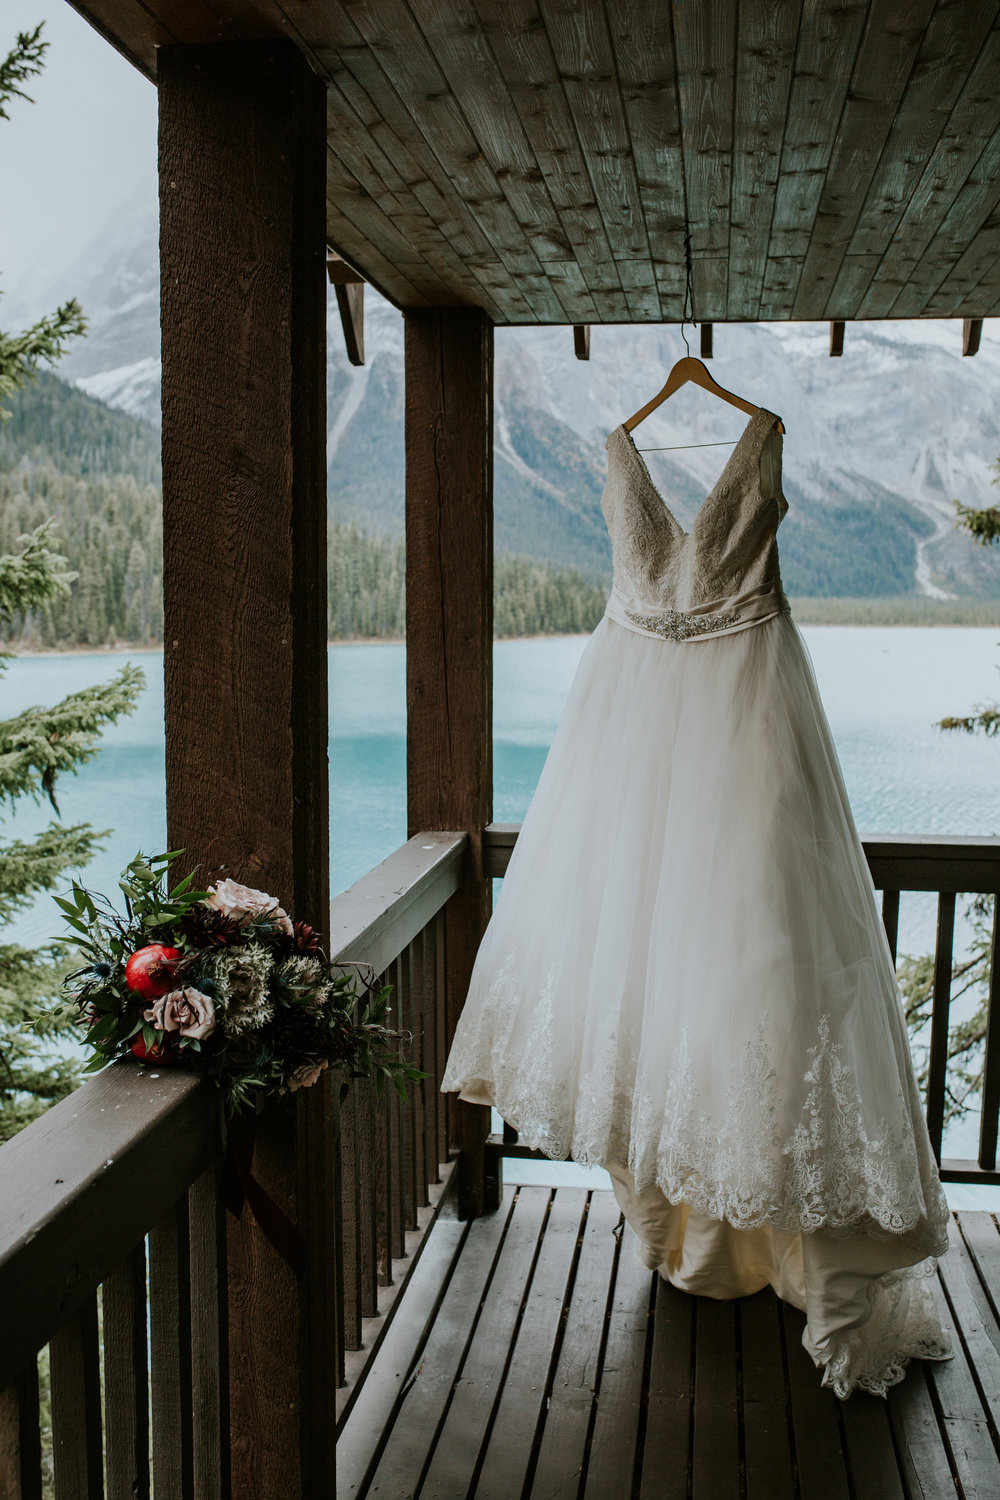 EmeraldLakeWedding2017 (12 of 123).jpg